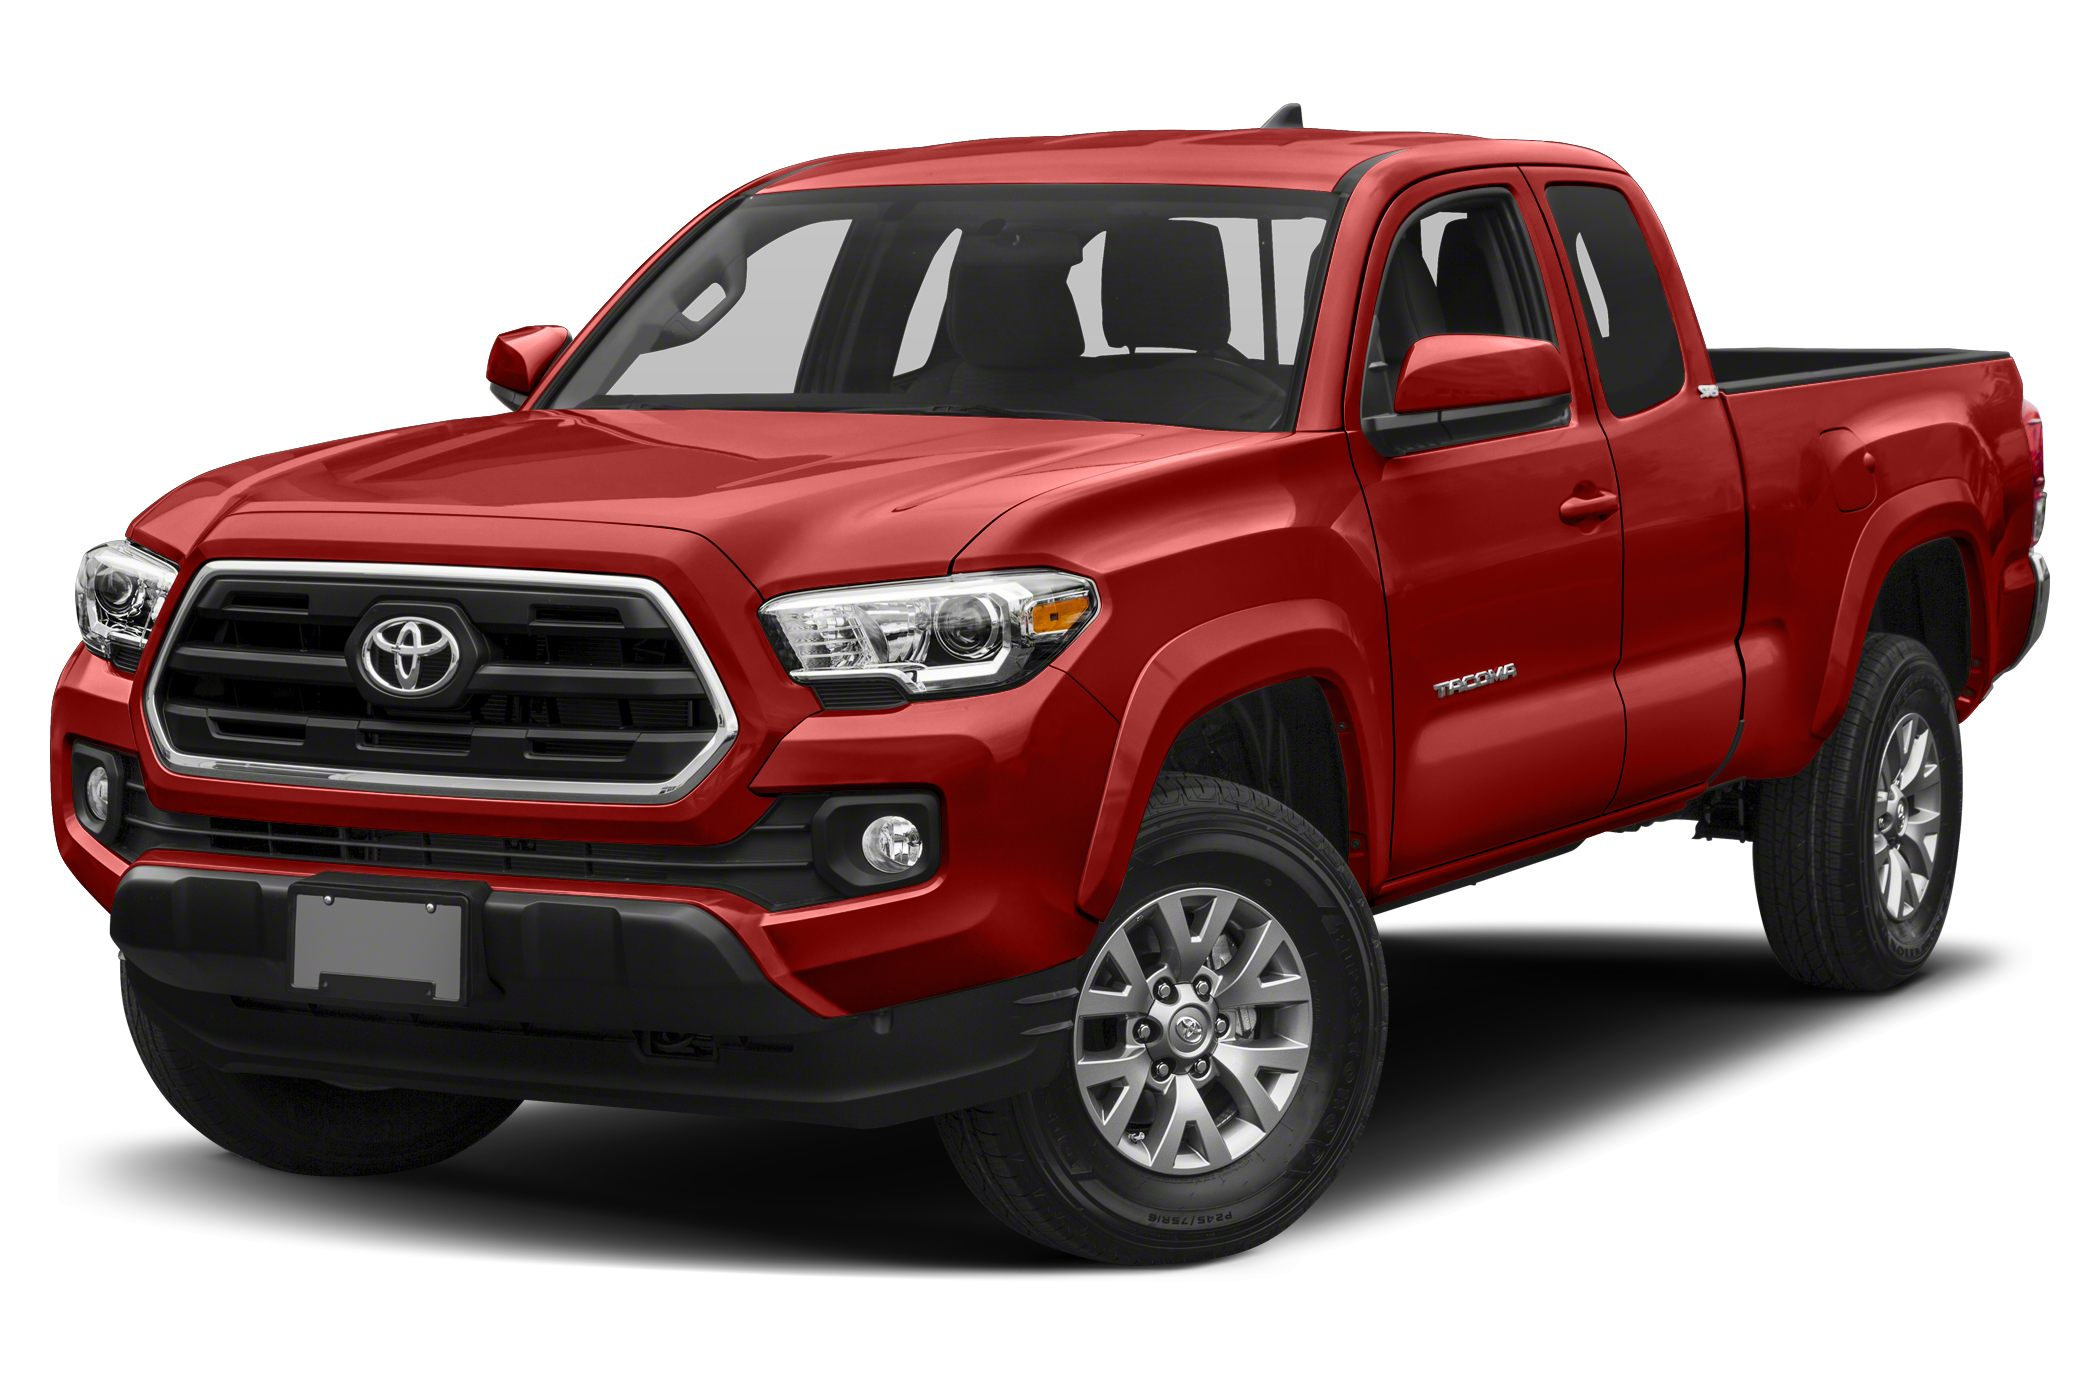 2016 Toyota Tacoma SR5 EPA 23 MPG Hwy18 MPG City CARFAX 1-Owner GREAT MILES 21660 SR5 trim i